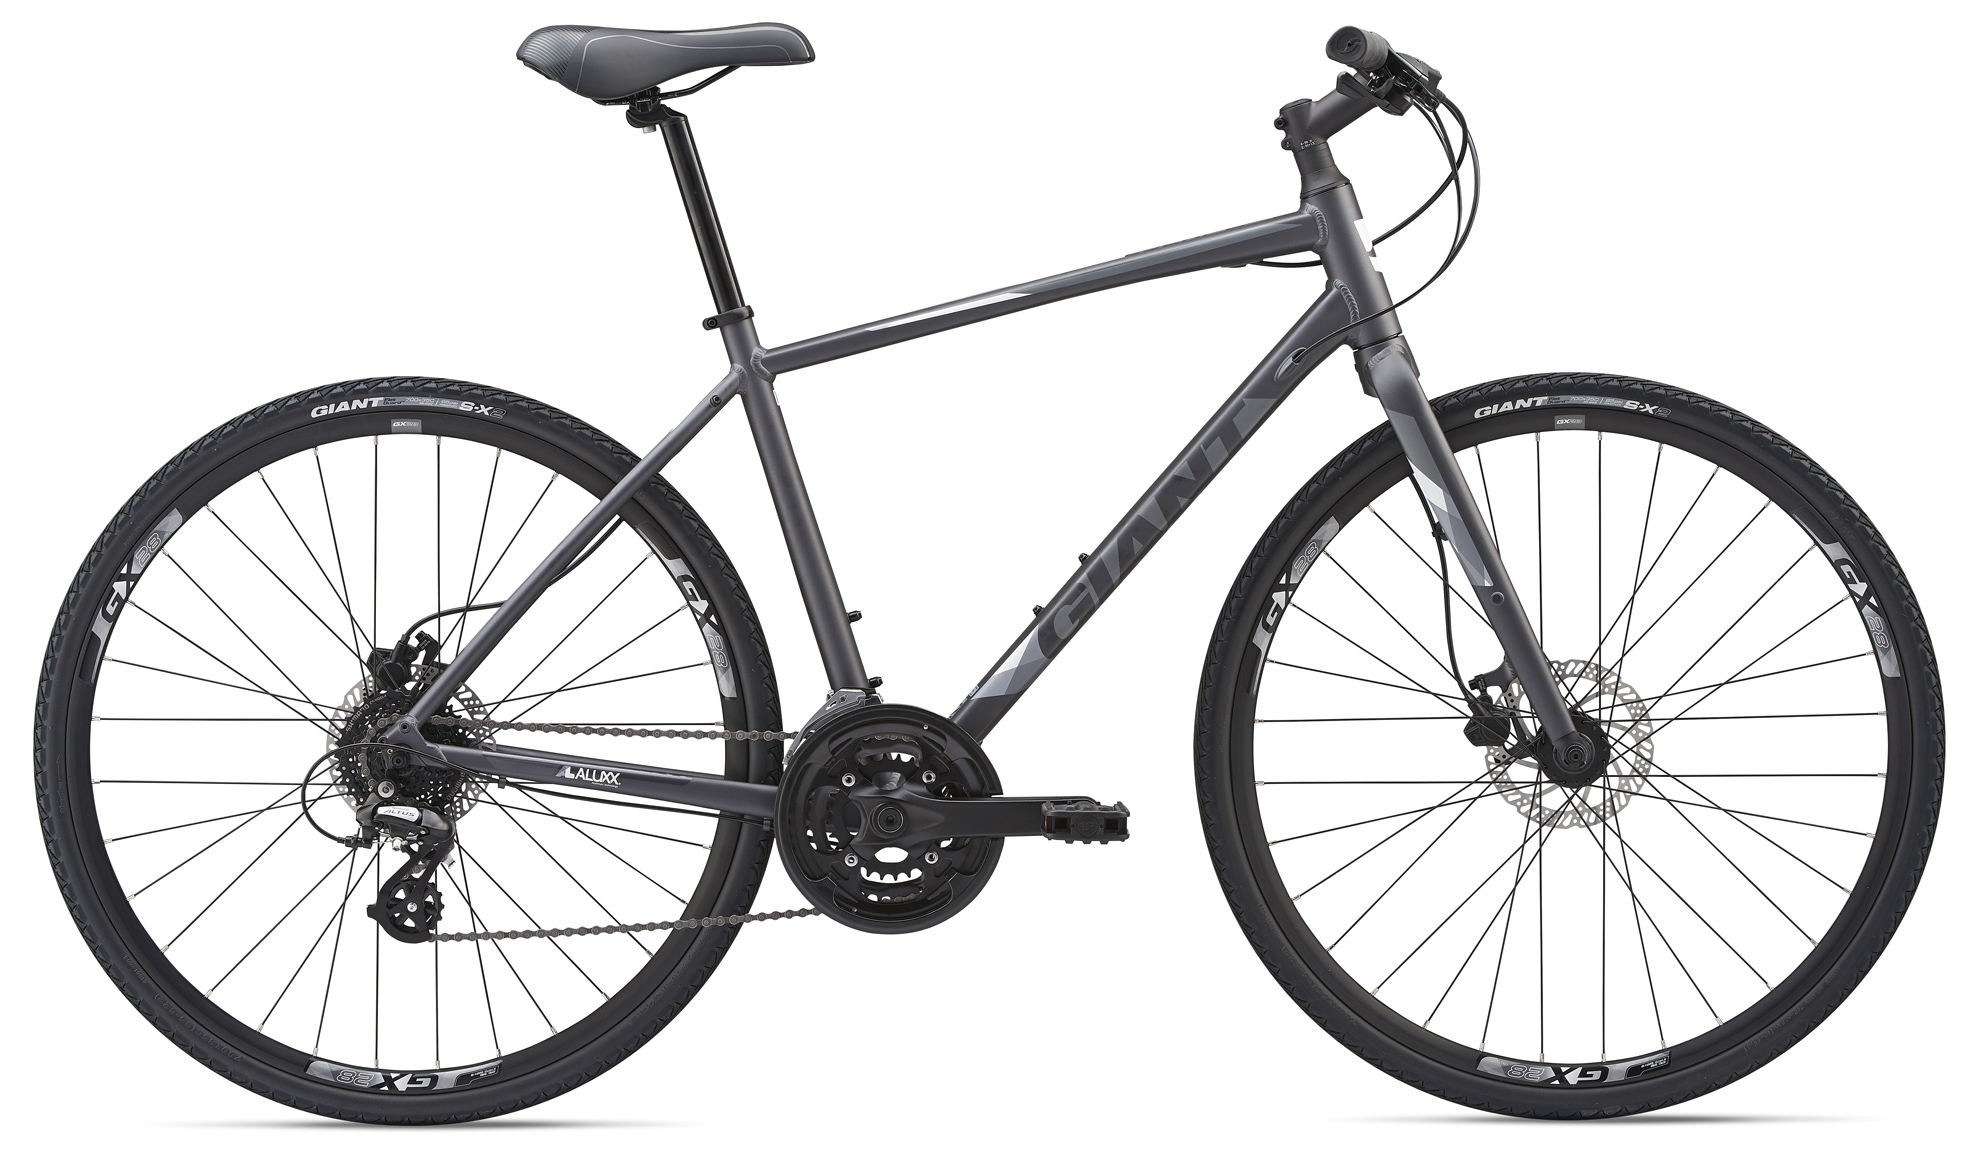 Велосипед Giant Escape 2 Disc 2019 велосипед trek skye sl disc 2014